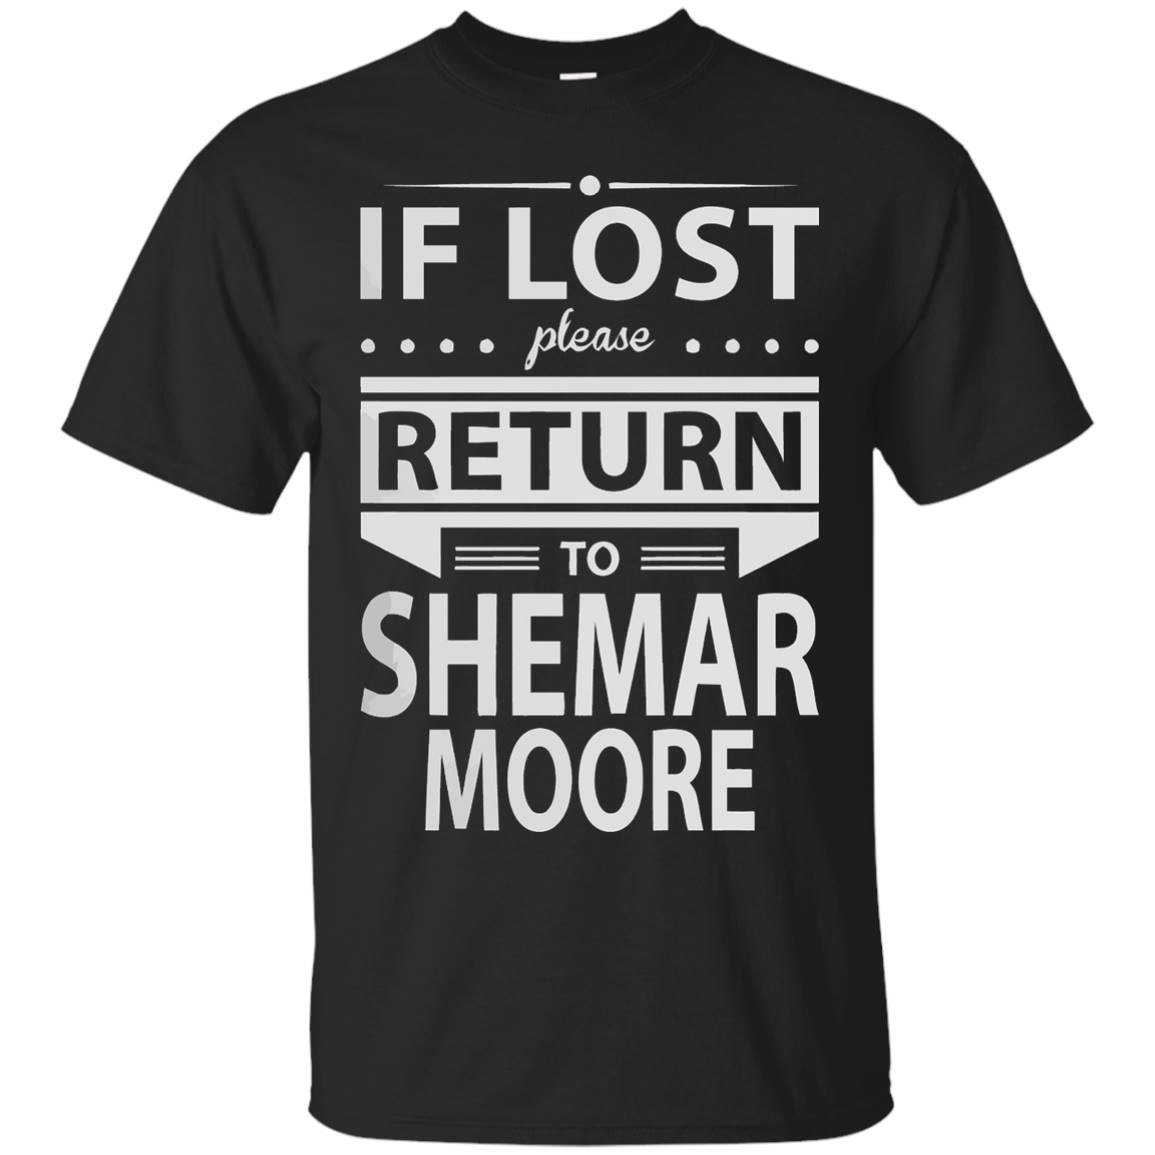 If Lost Please Return To Shemar Moore shirt